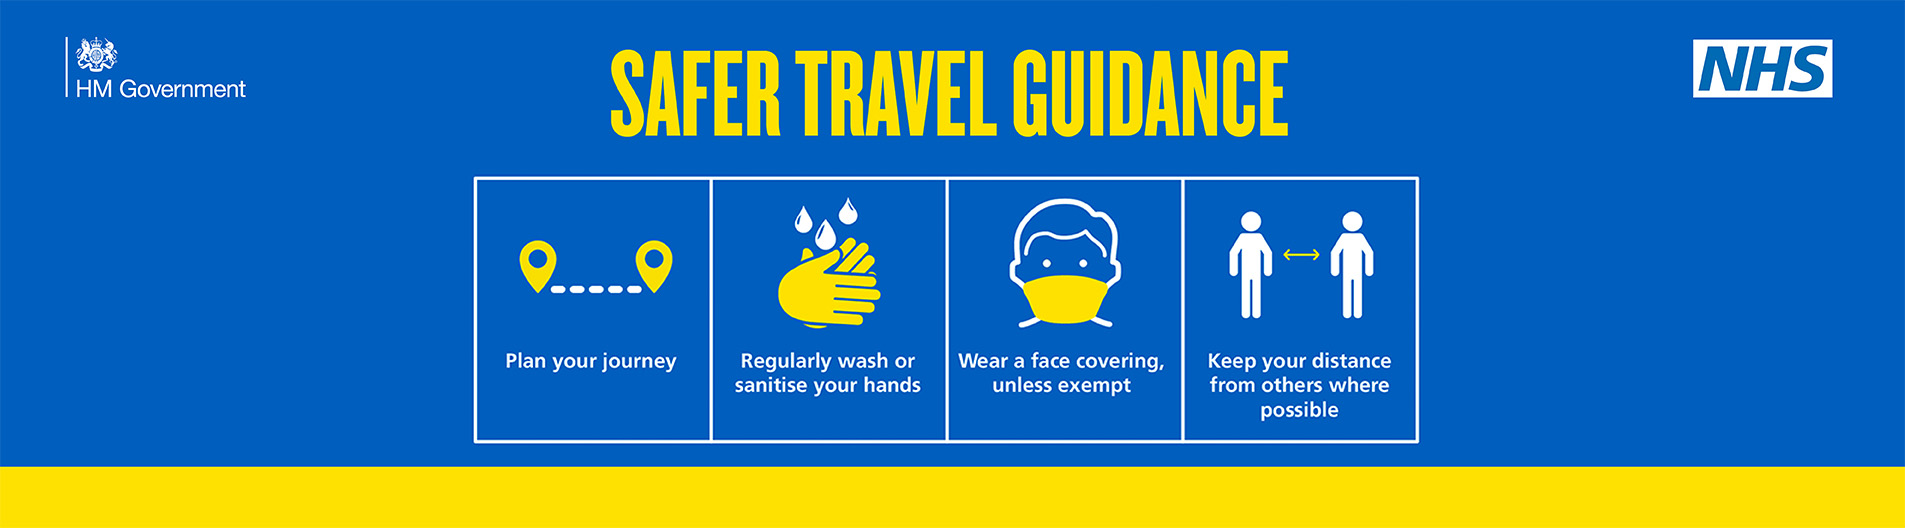 Travel guidance: Keeping safe when out and about